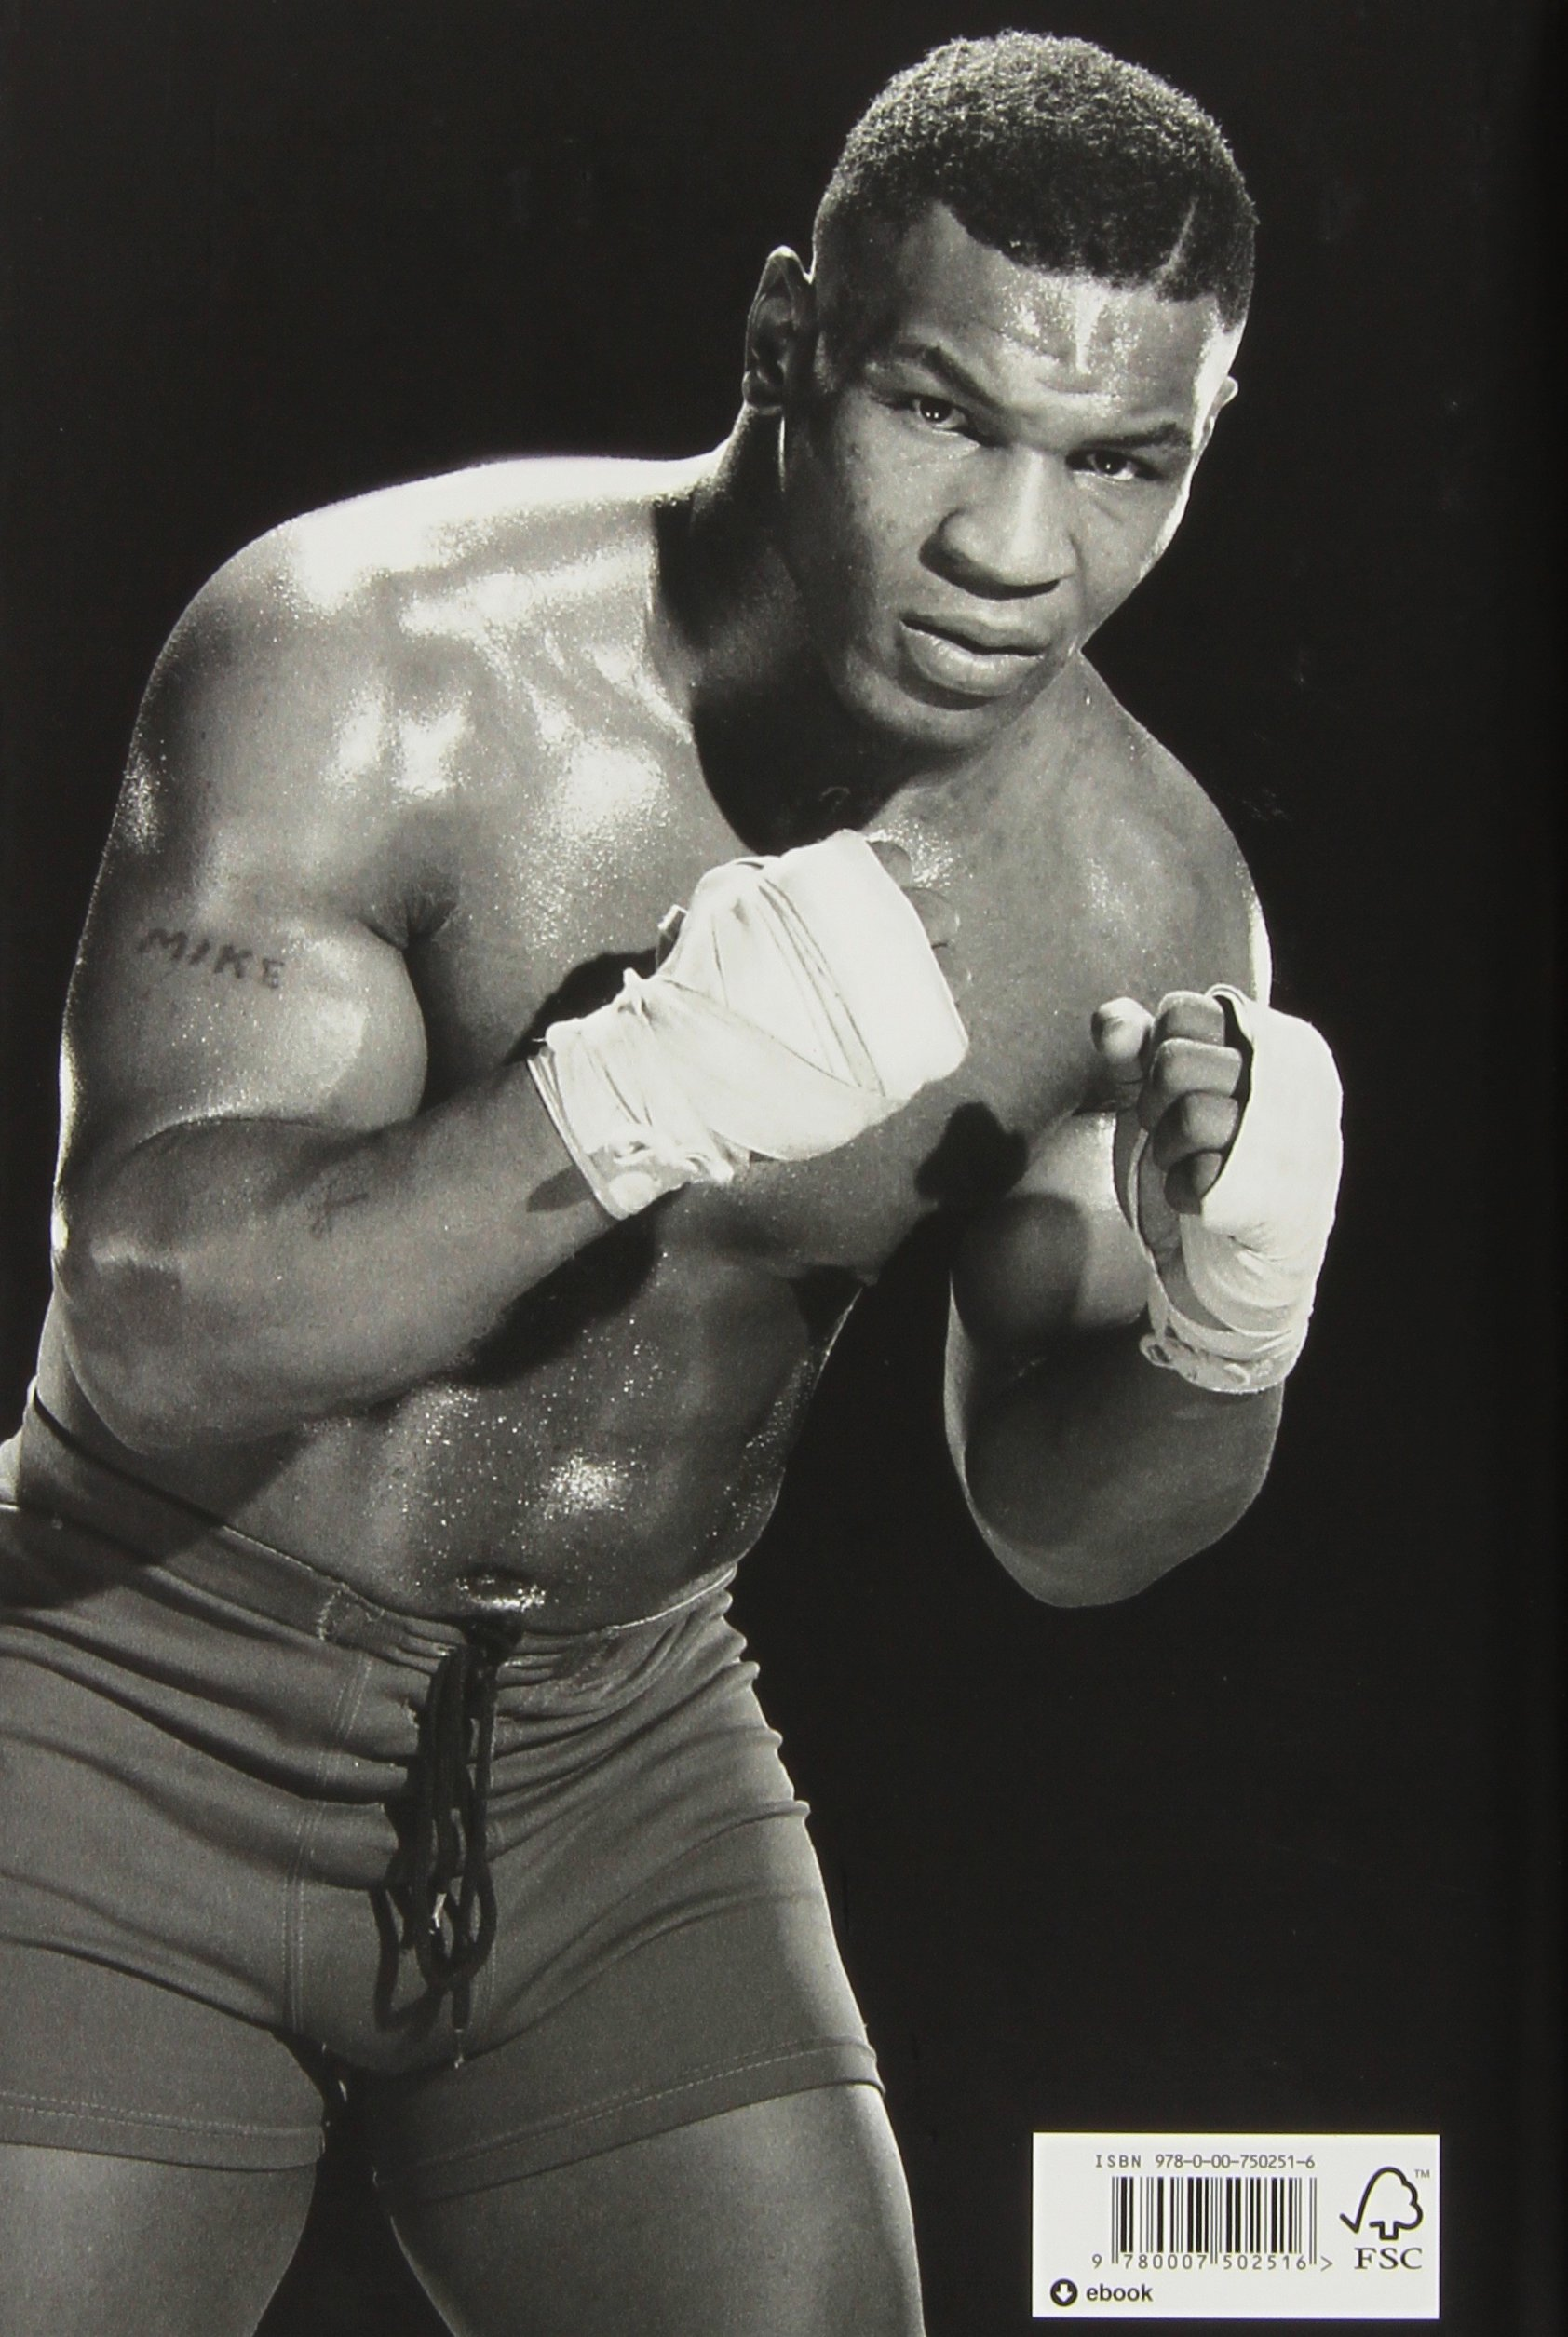 mike tyson ufcmike tyson 2016, mike tyson биография, mike tyson foto, mike tyson video, mike tyson википедия, mike tyson boxrec, mike tyson film, mike tyson mysteries, mike tyson 2017, mike tyson height, mike tyson wiki, mike tyson soulja boy, mike tyson quotes, mike tyson boks, mike tyson vs peter mcneeley, mike tyson undisputed truth, mike tyson instagram, mike tyson art, mike tyson ufc, mike tyson knockouts